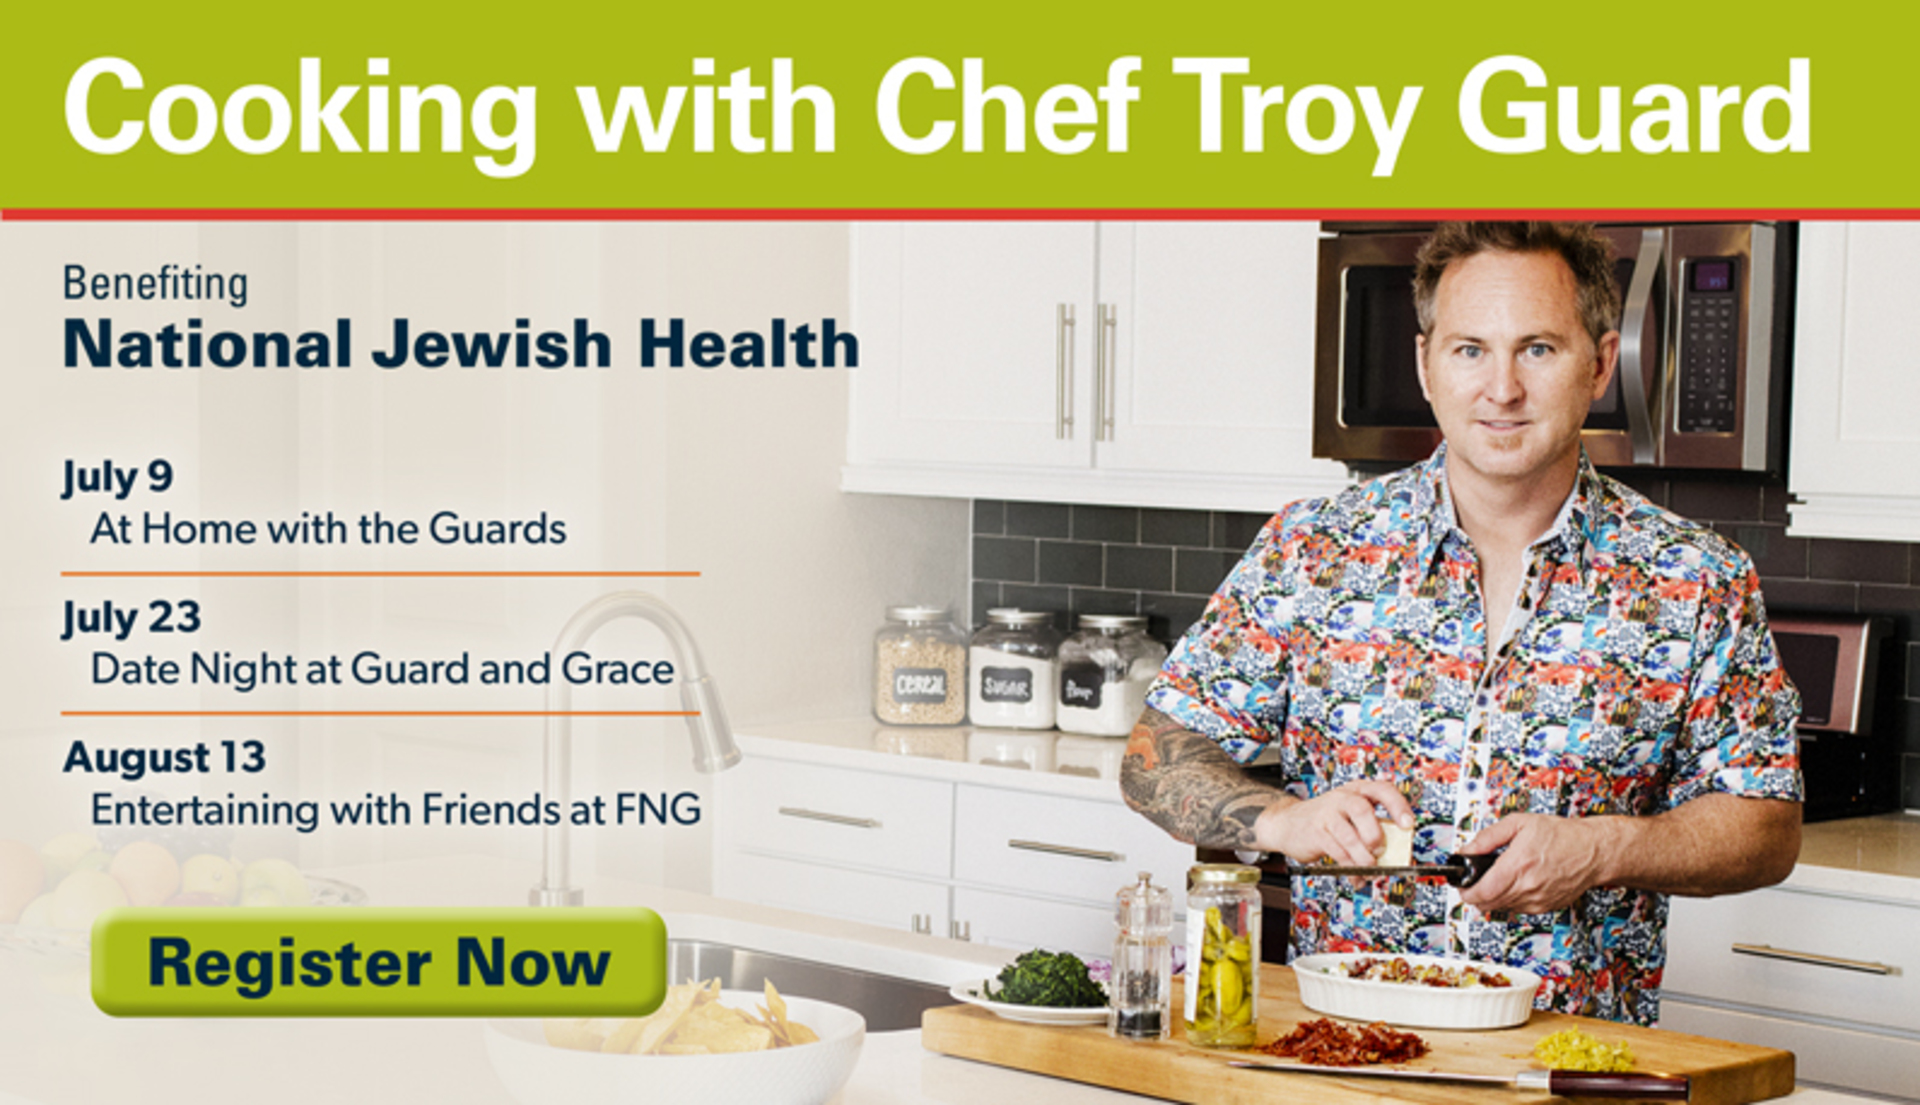 Cooking with Chef Troy Guard